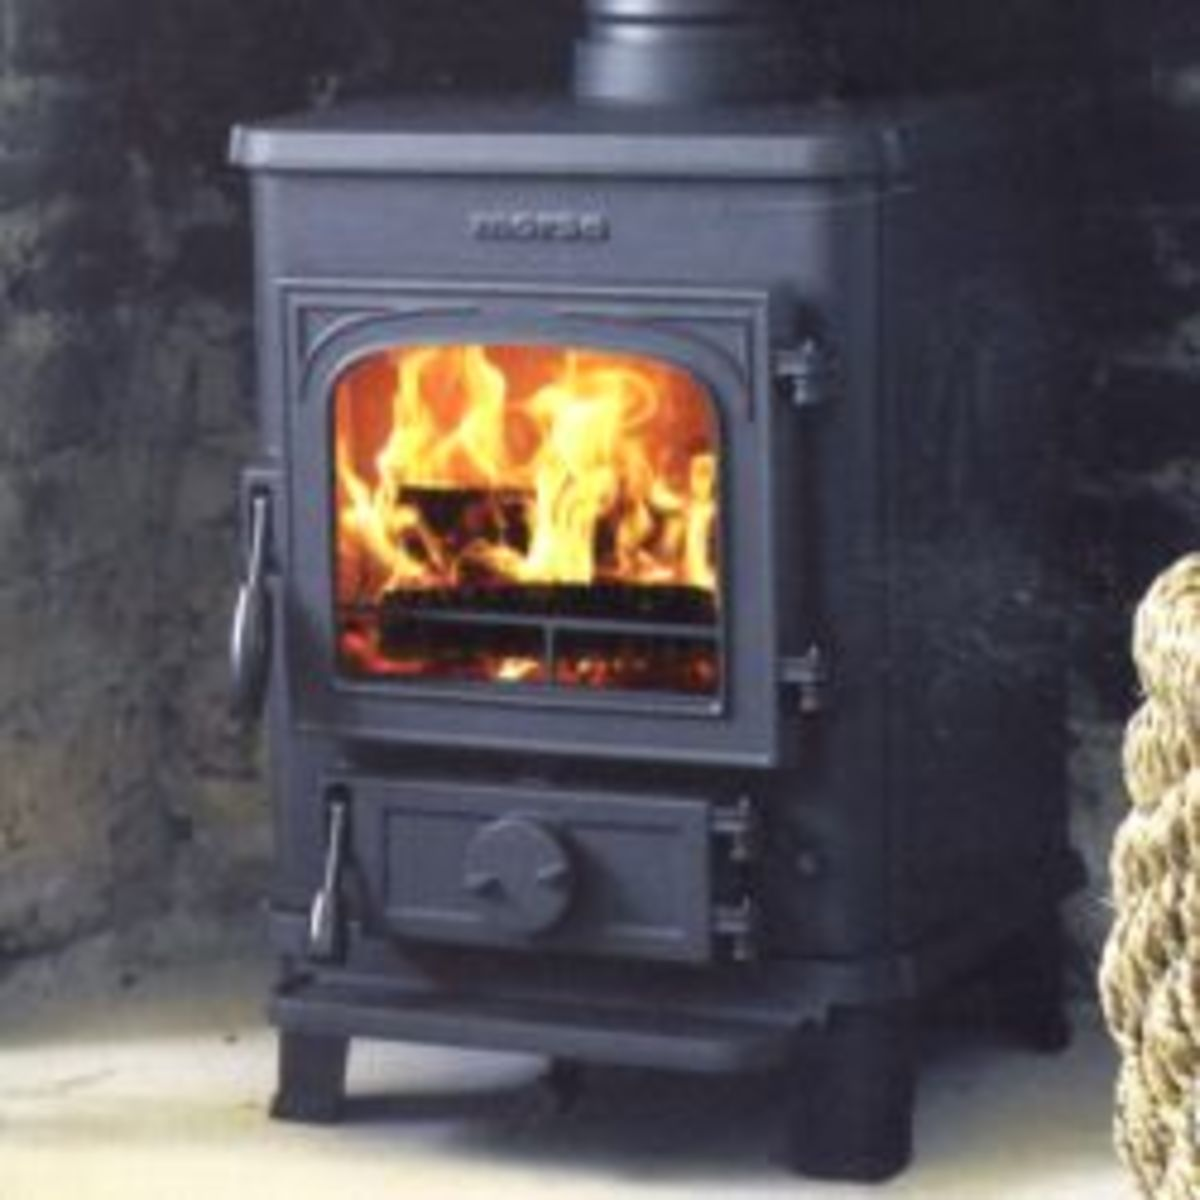 The Morso Squirrel 1430 Multifuel Stove